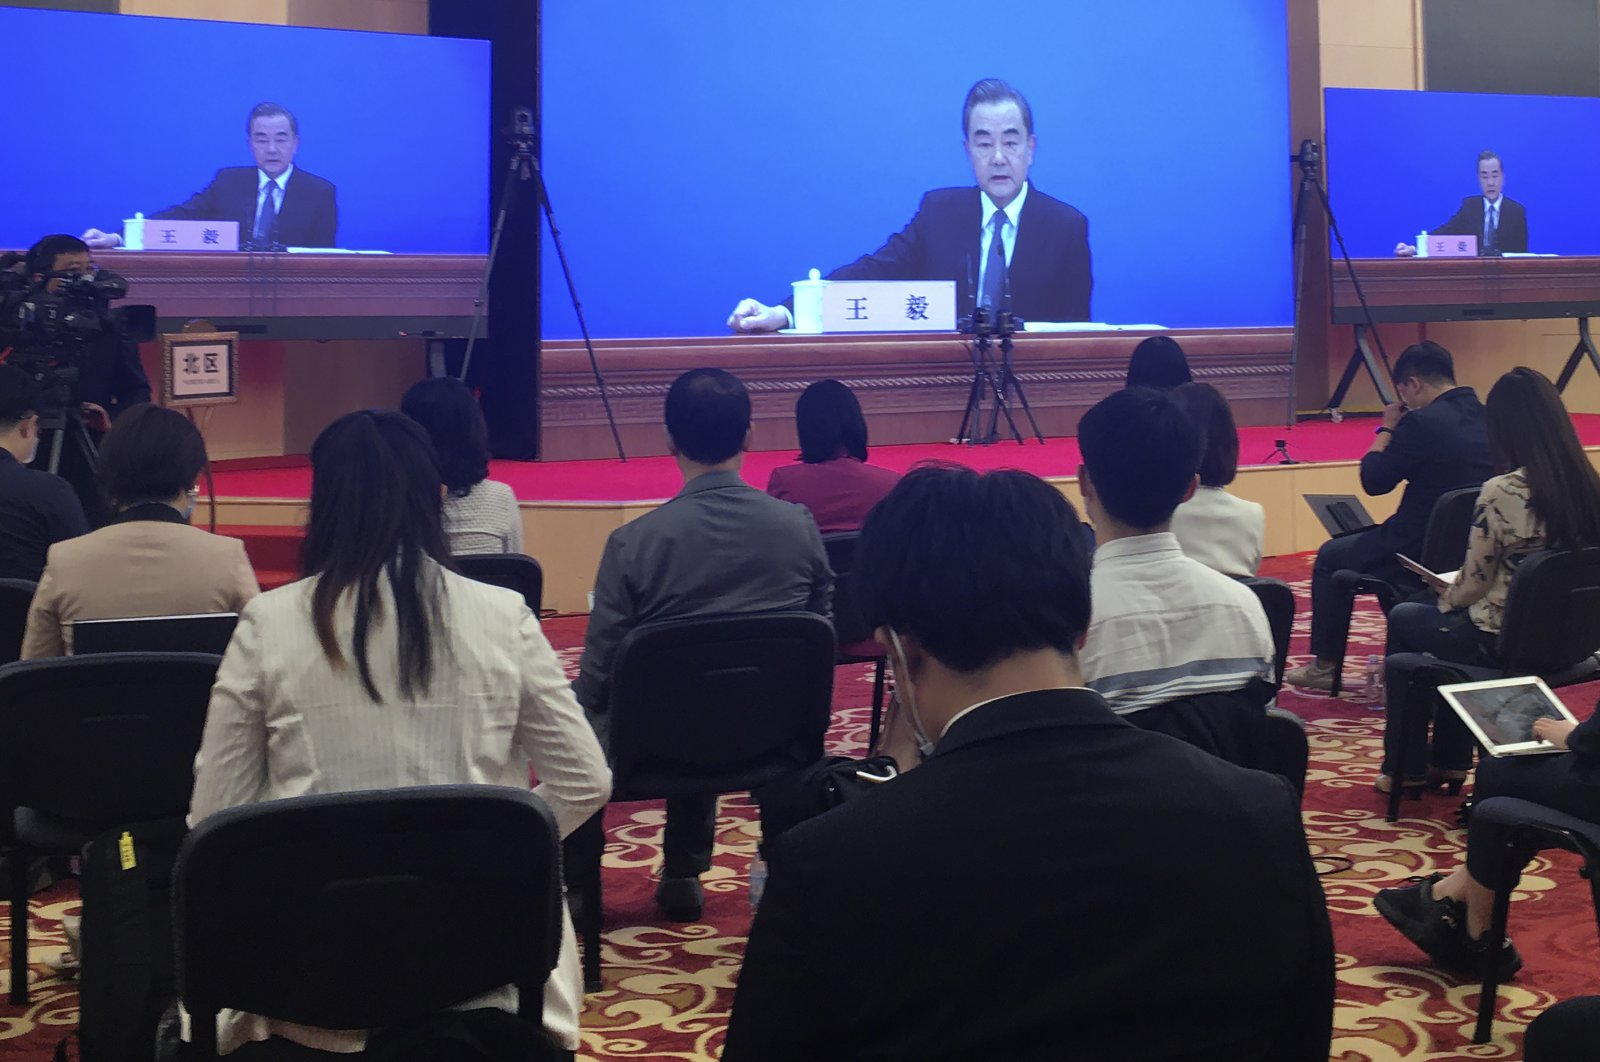 China's Foreign Minister Wang Yi is broadcast remotely on big screens during a press conference on the sideline of the National People's Congress, Beijing, May 24, 2020. (AP Photo/Ken Moritsugu)